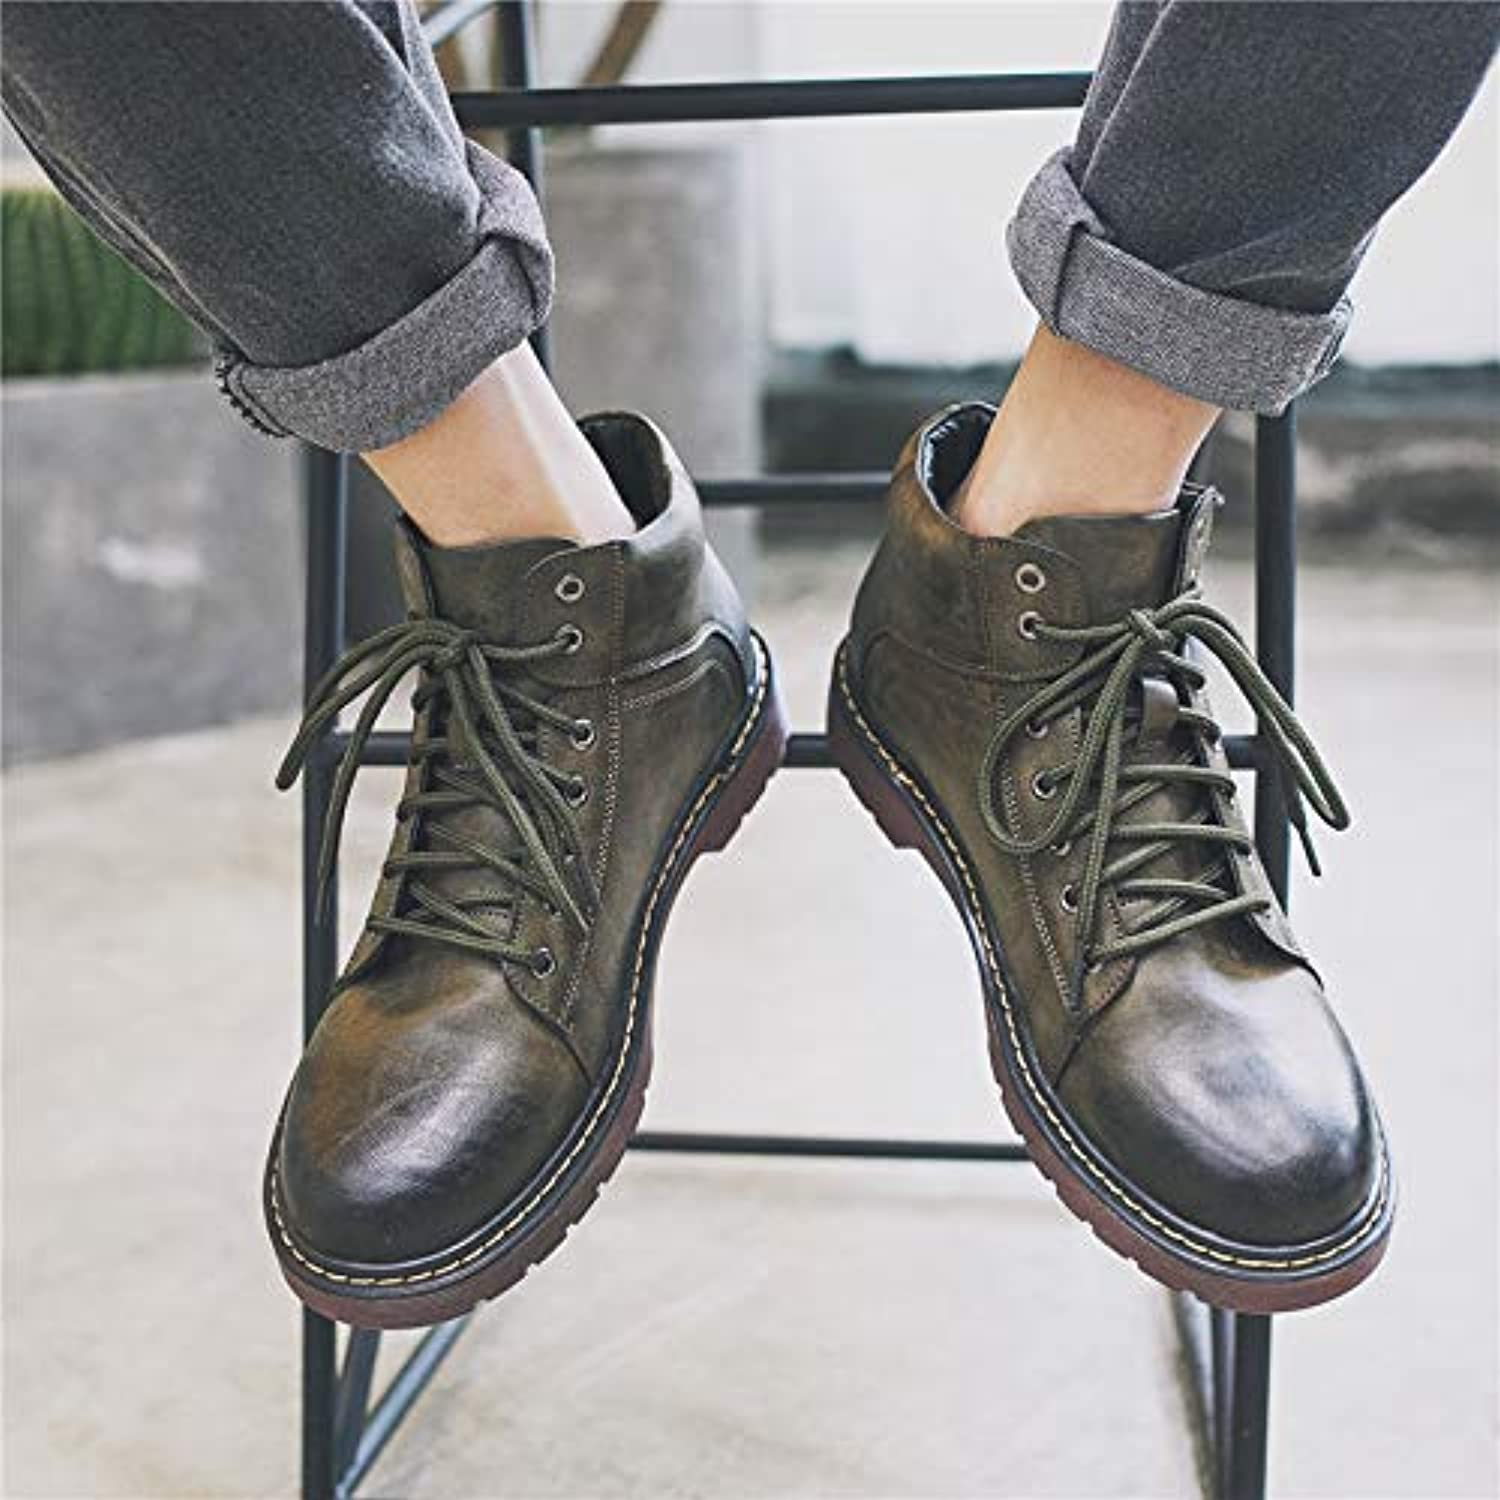 LOVDRAM Boots Men's Autumn High Men'S shoes Boots Martin Boots Men'S Vintage Cotton Ankle Boots In The Tooling Cotton shoes